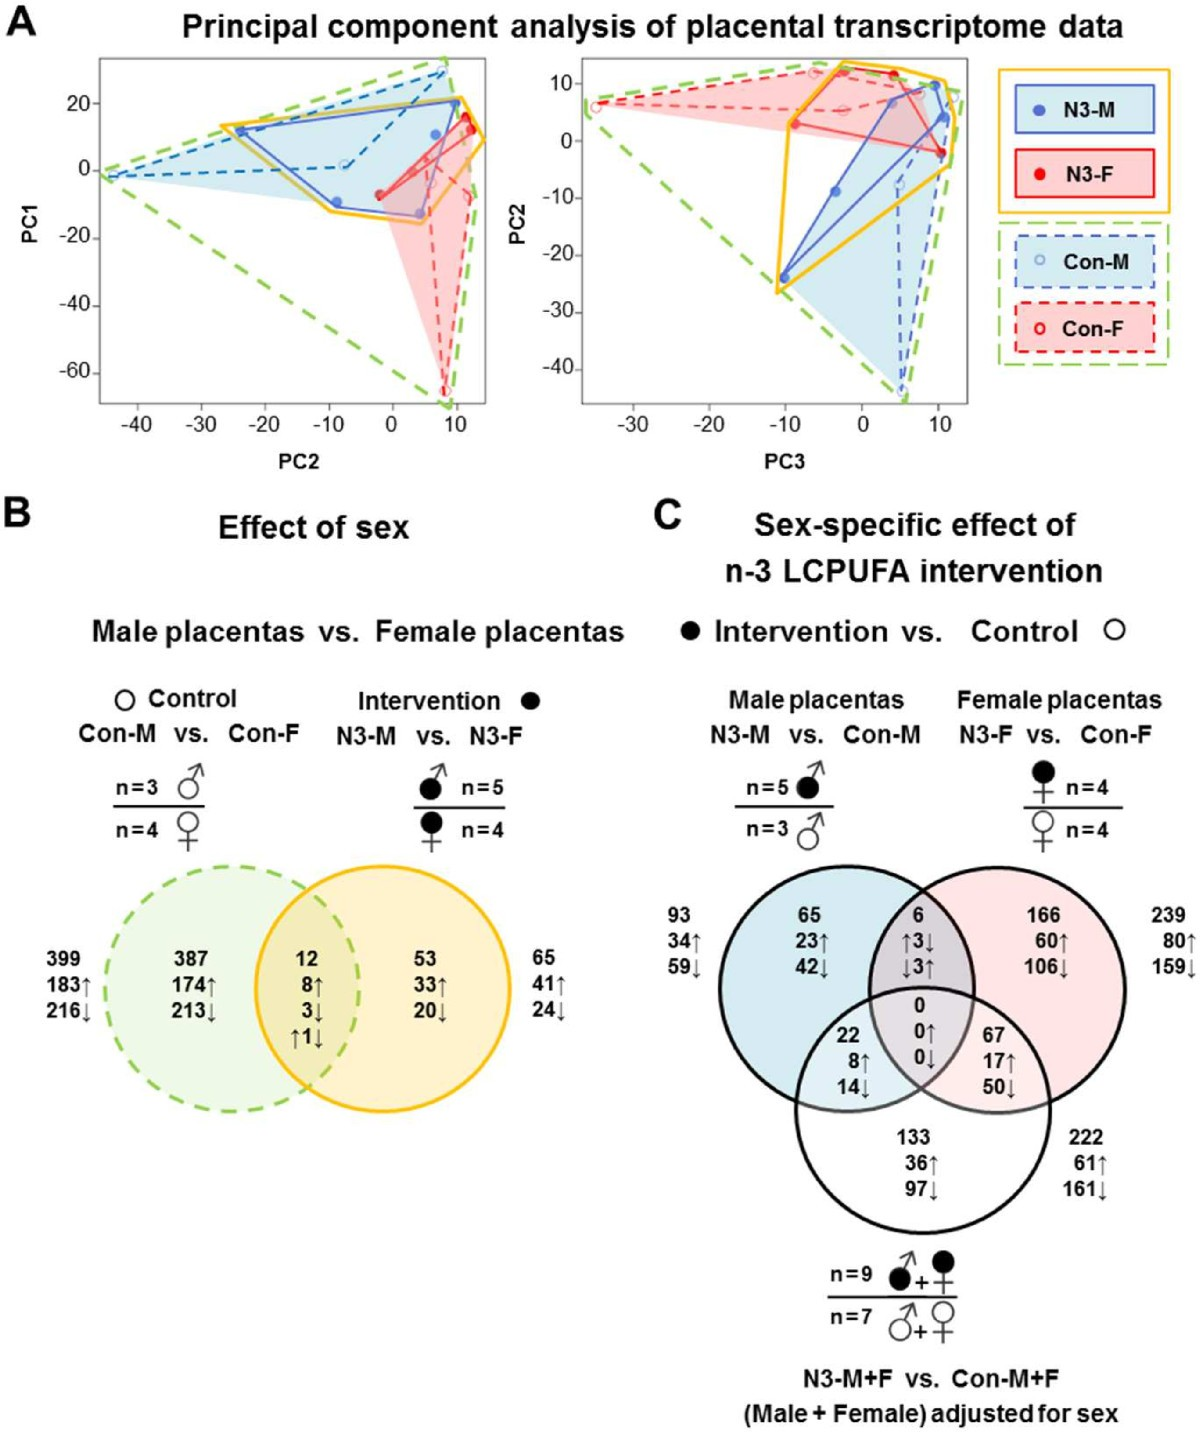 Human placental transcriptome shows sexually dimorphic gene